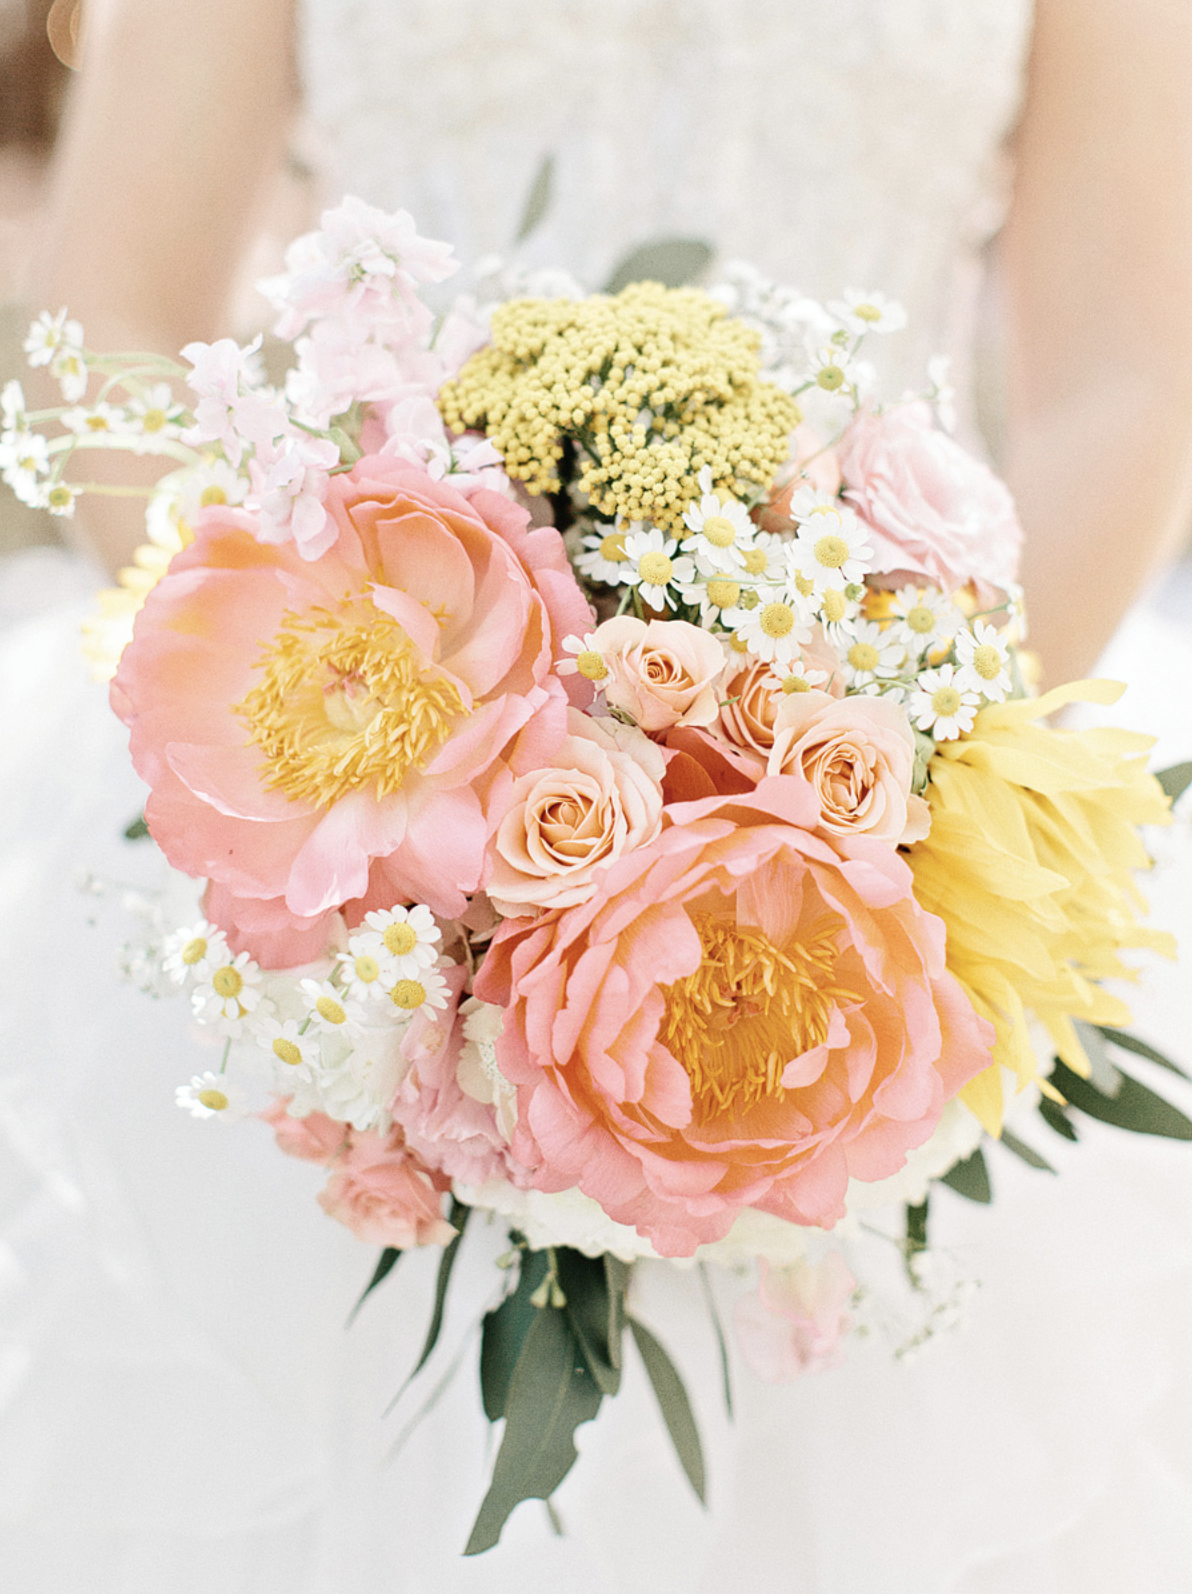 Coral peonies, roses, daisies and achillea | Photo by  Amy Arrington Photography